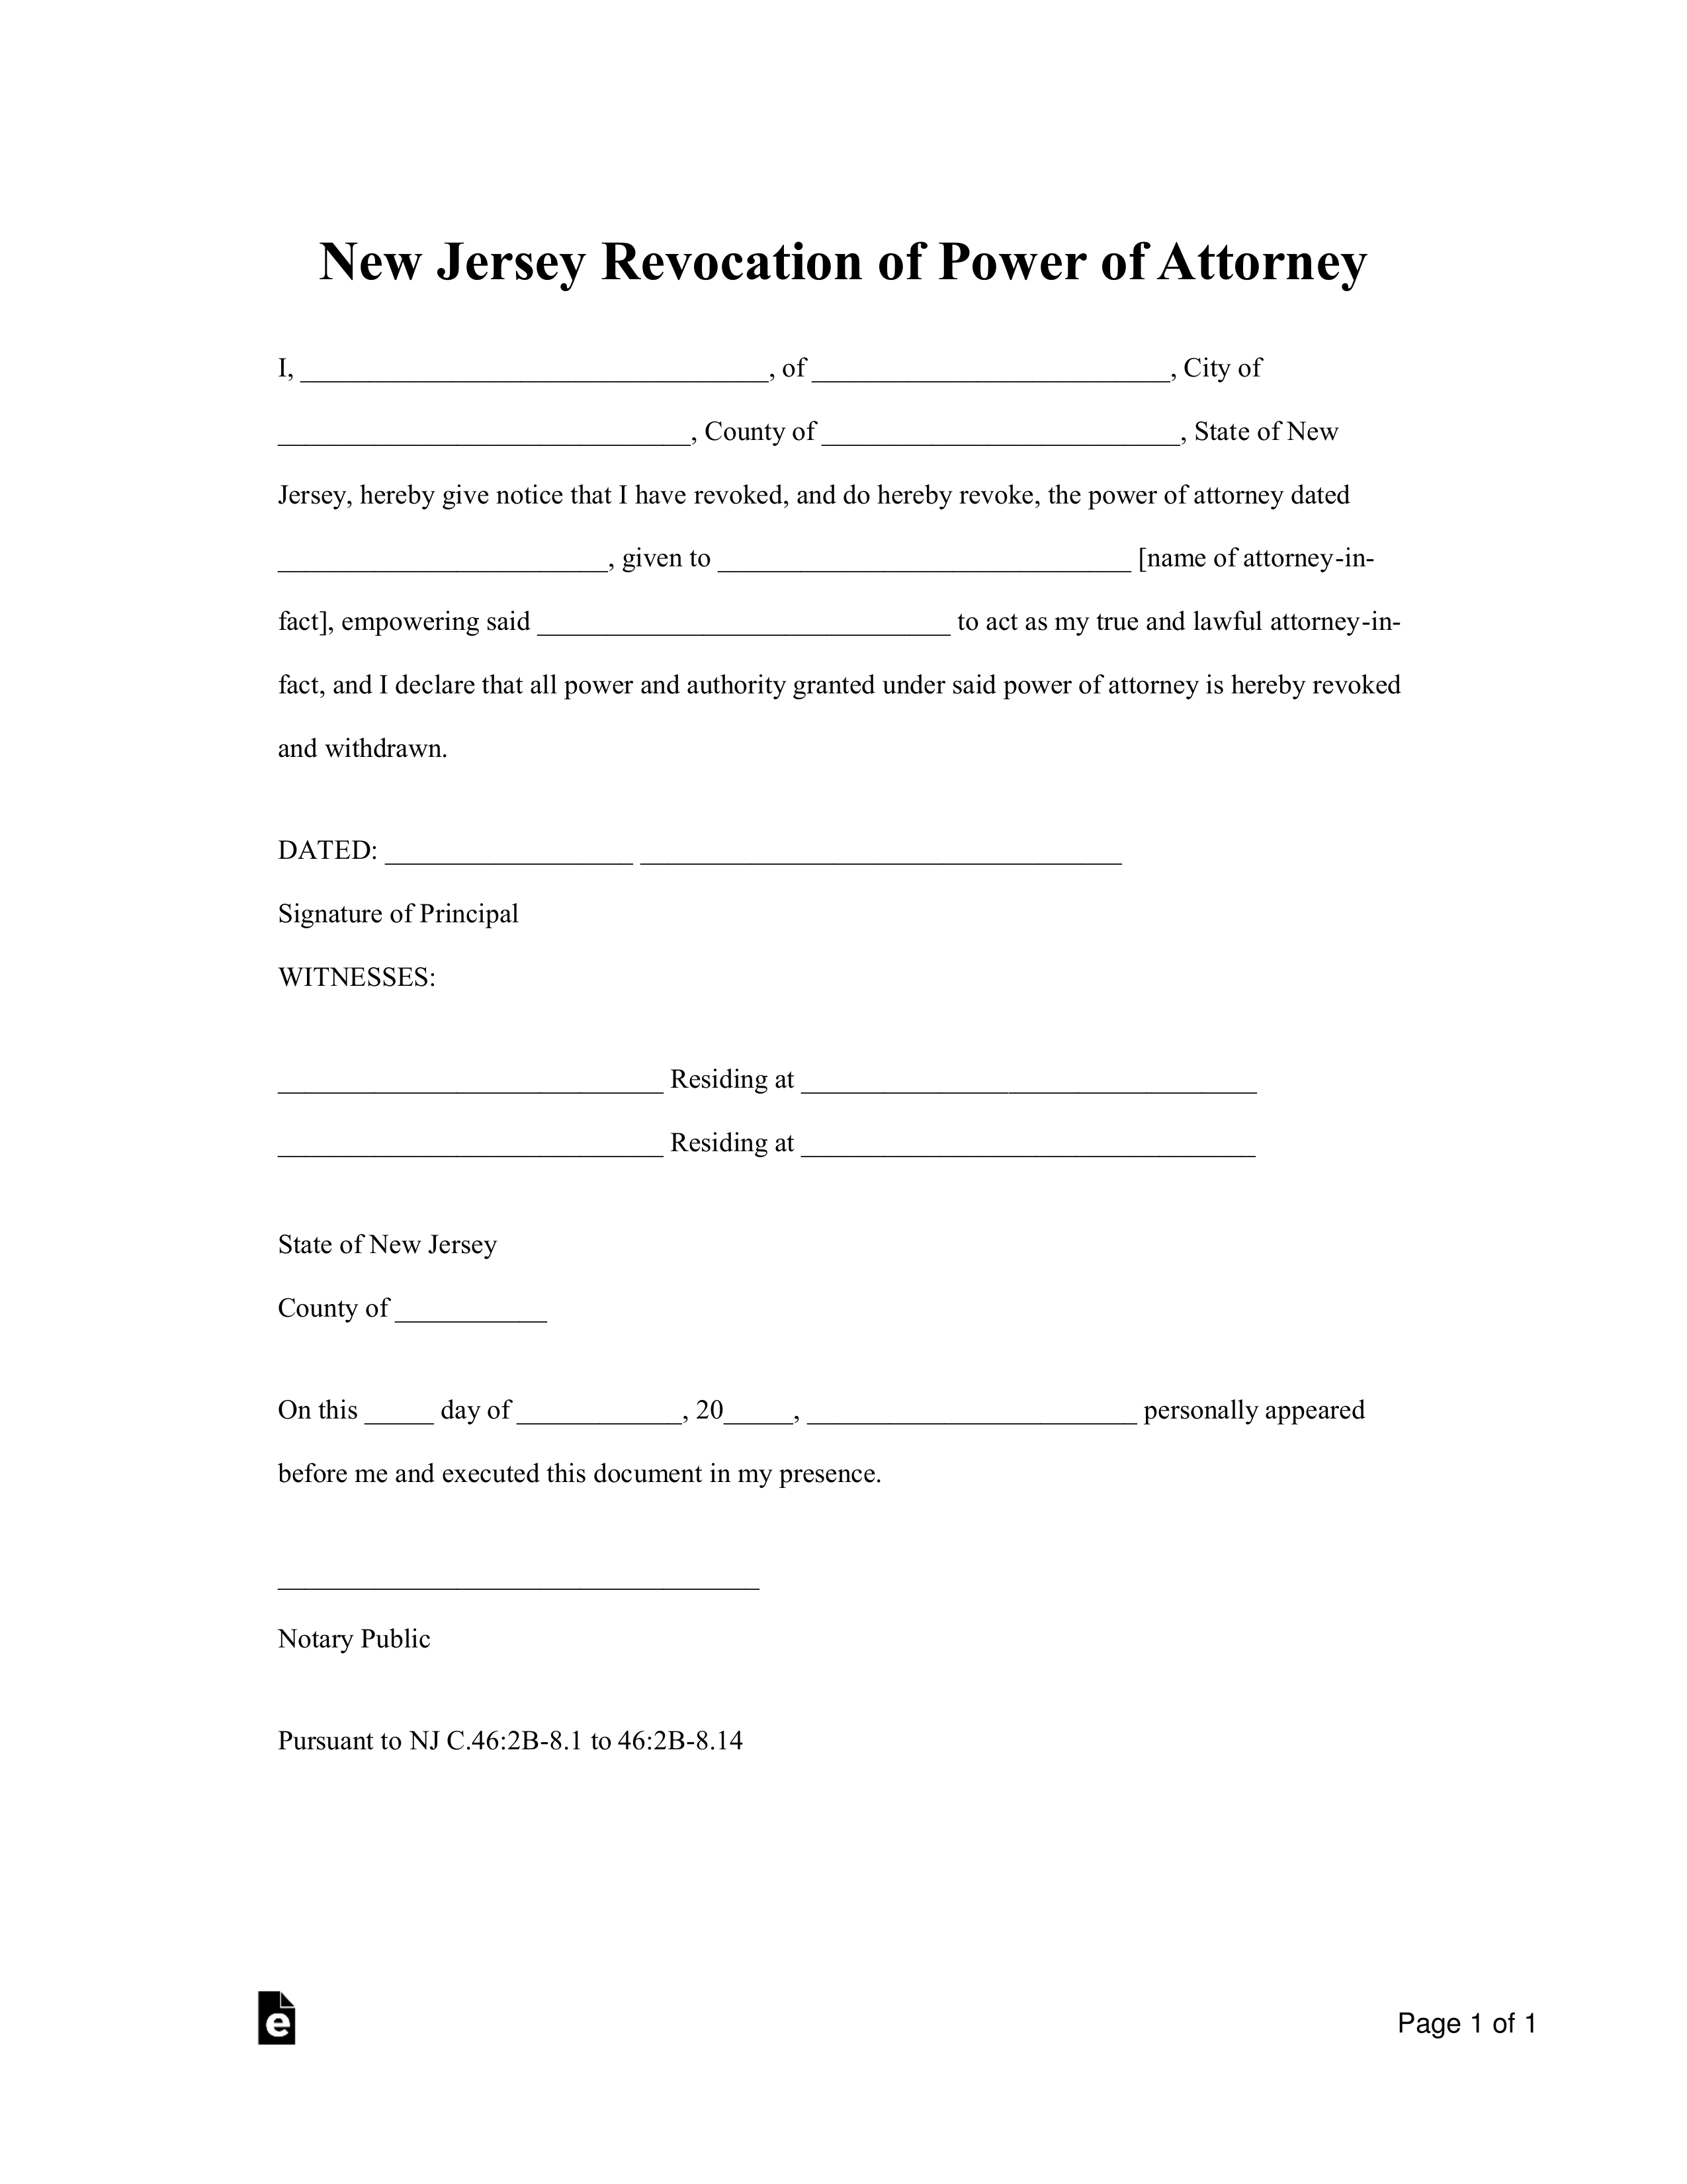 Free New Jersey Revocation Power Of Attorney Form PDF